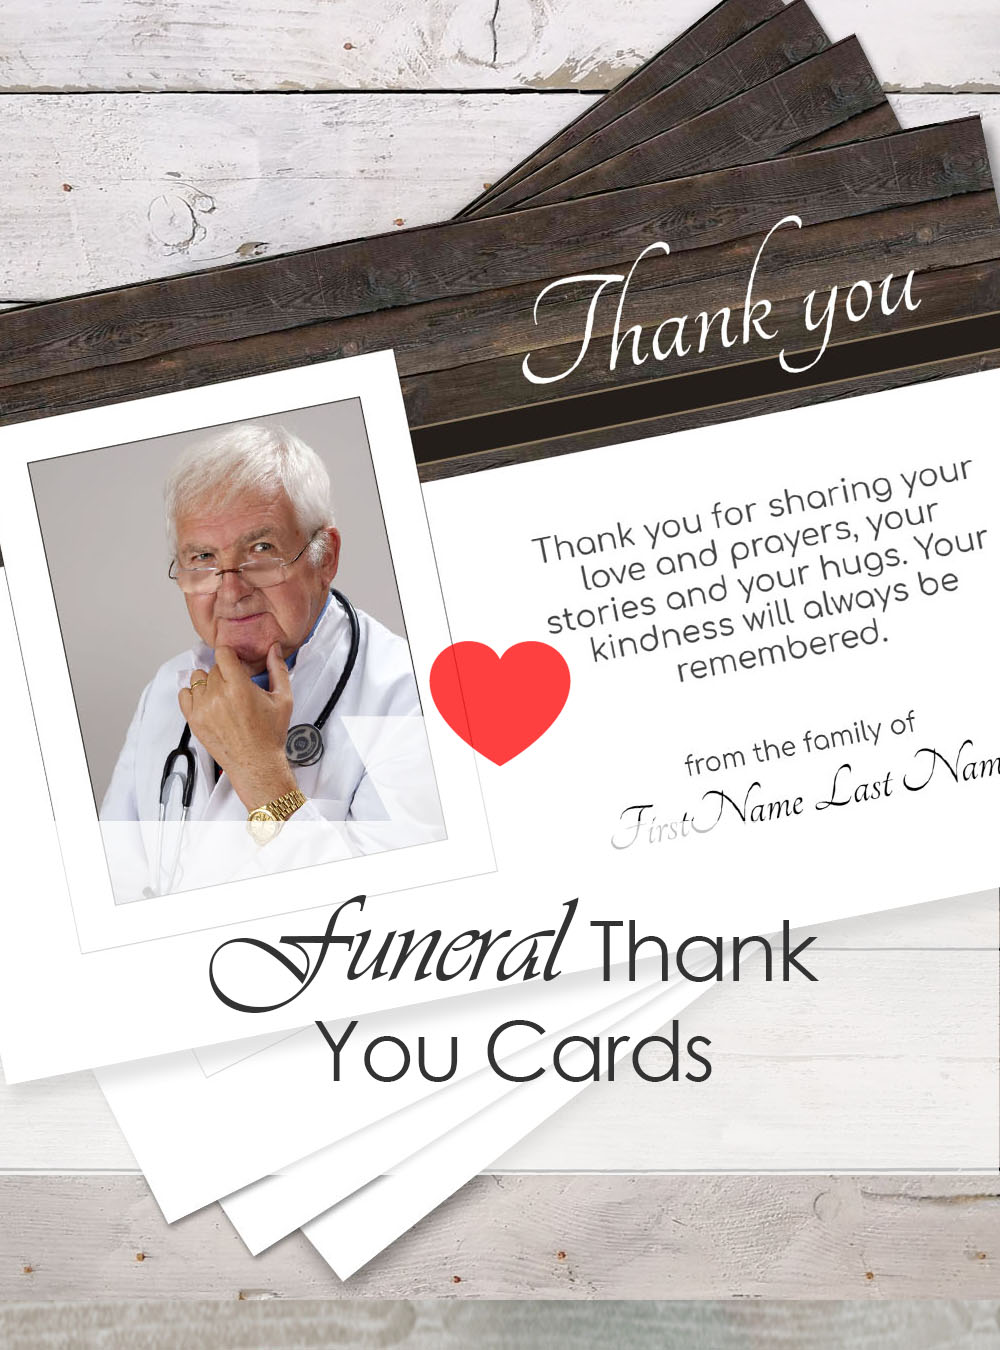 Why Send Funeral Thank You Cards